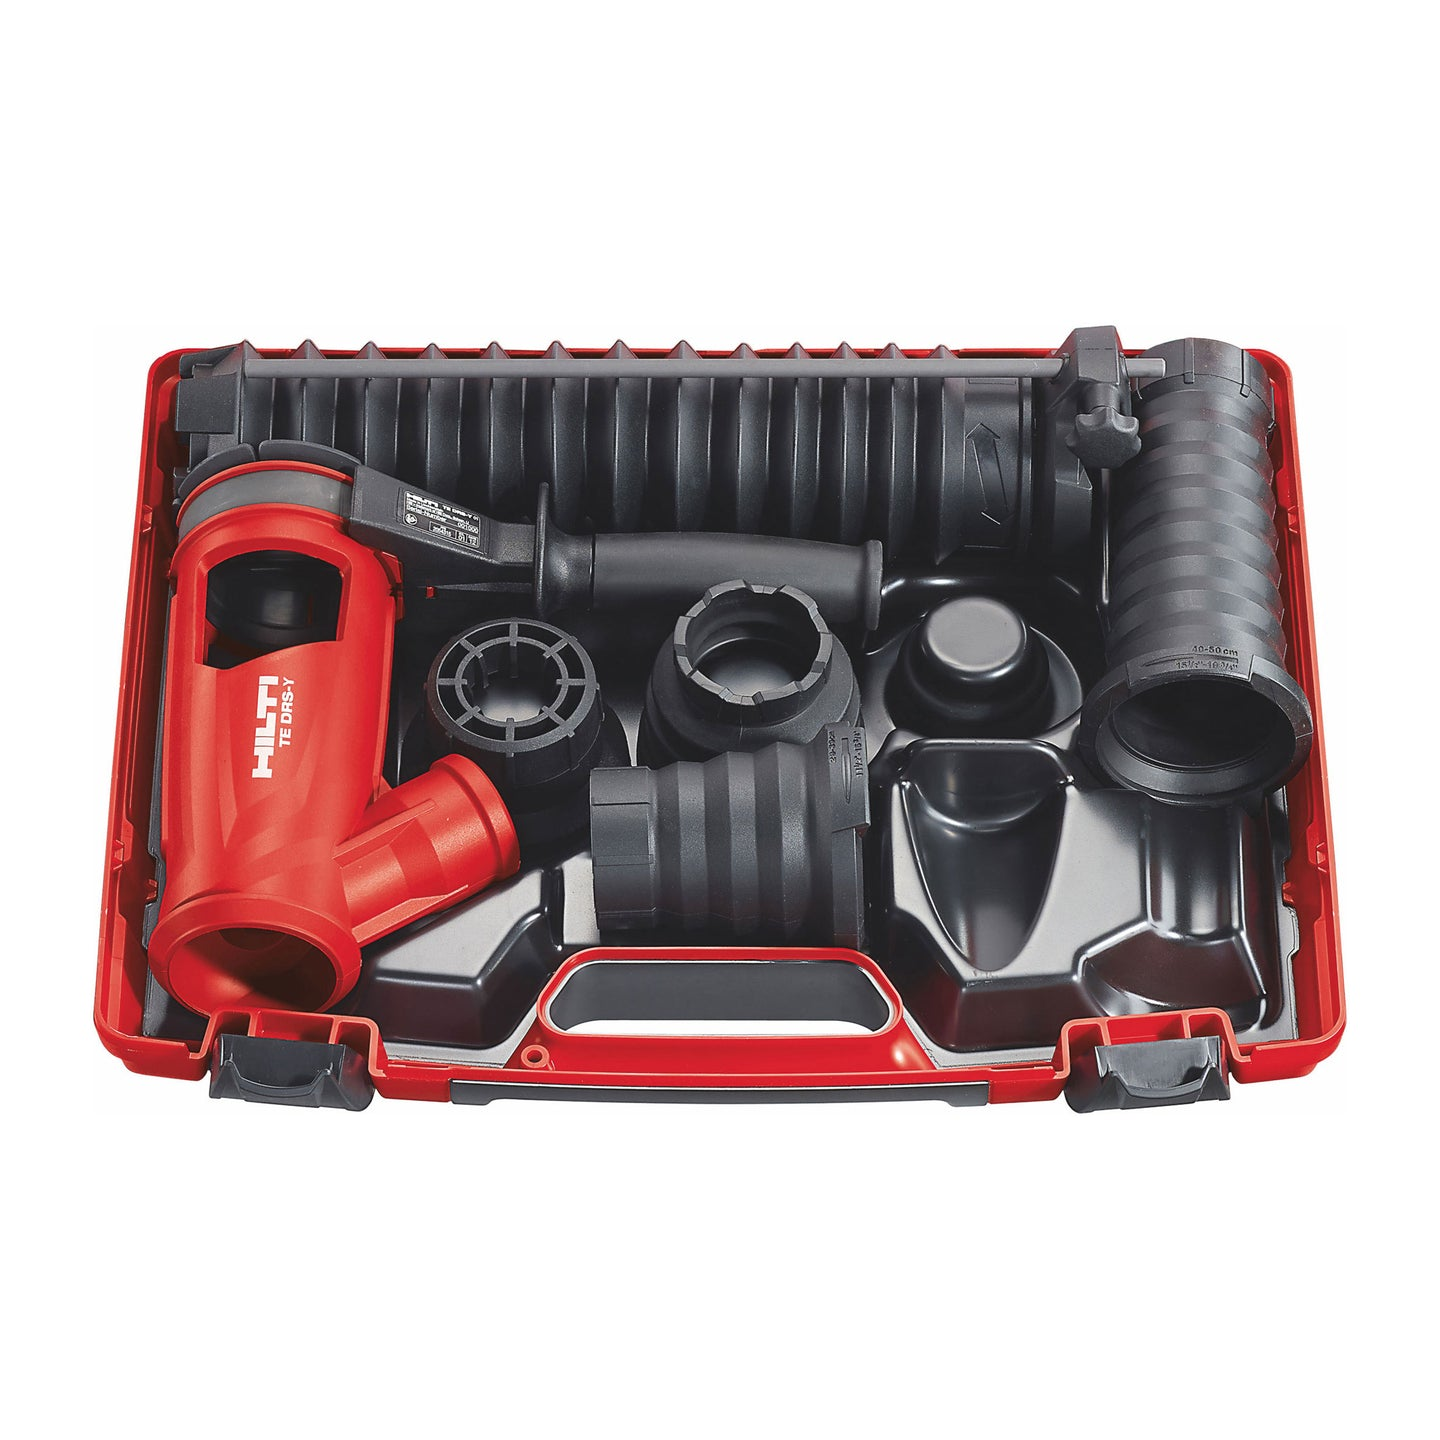 Dust removal system - Hilti TE DRS-Y